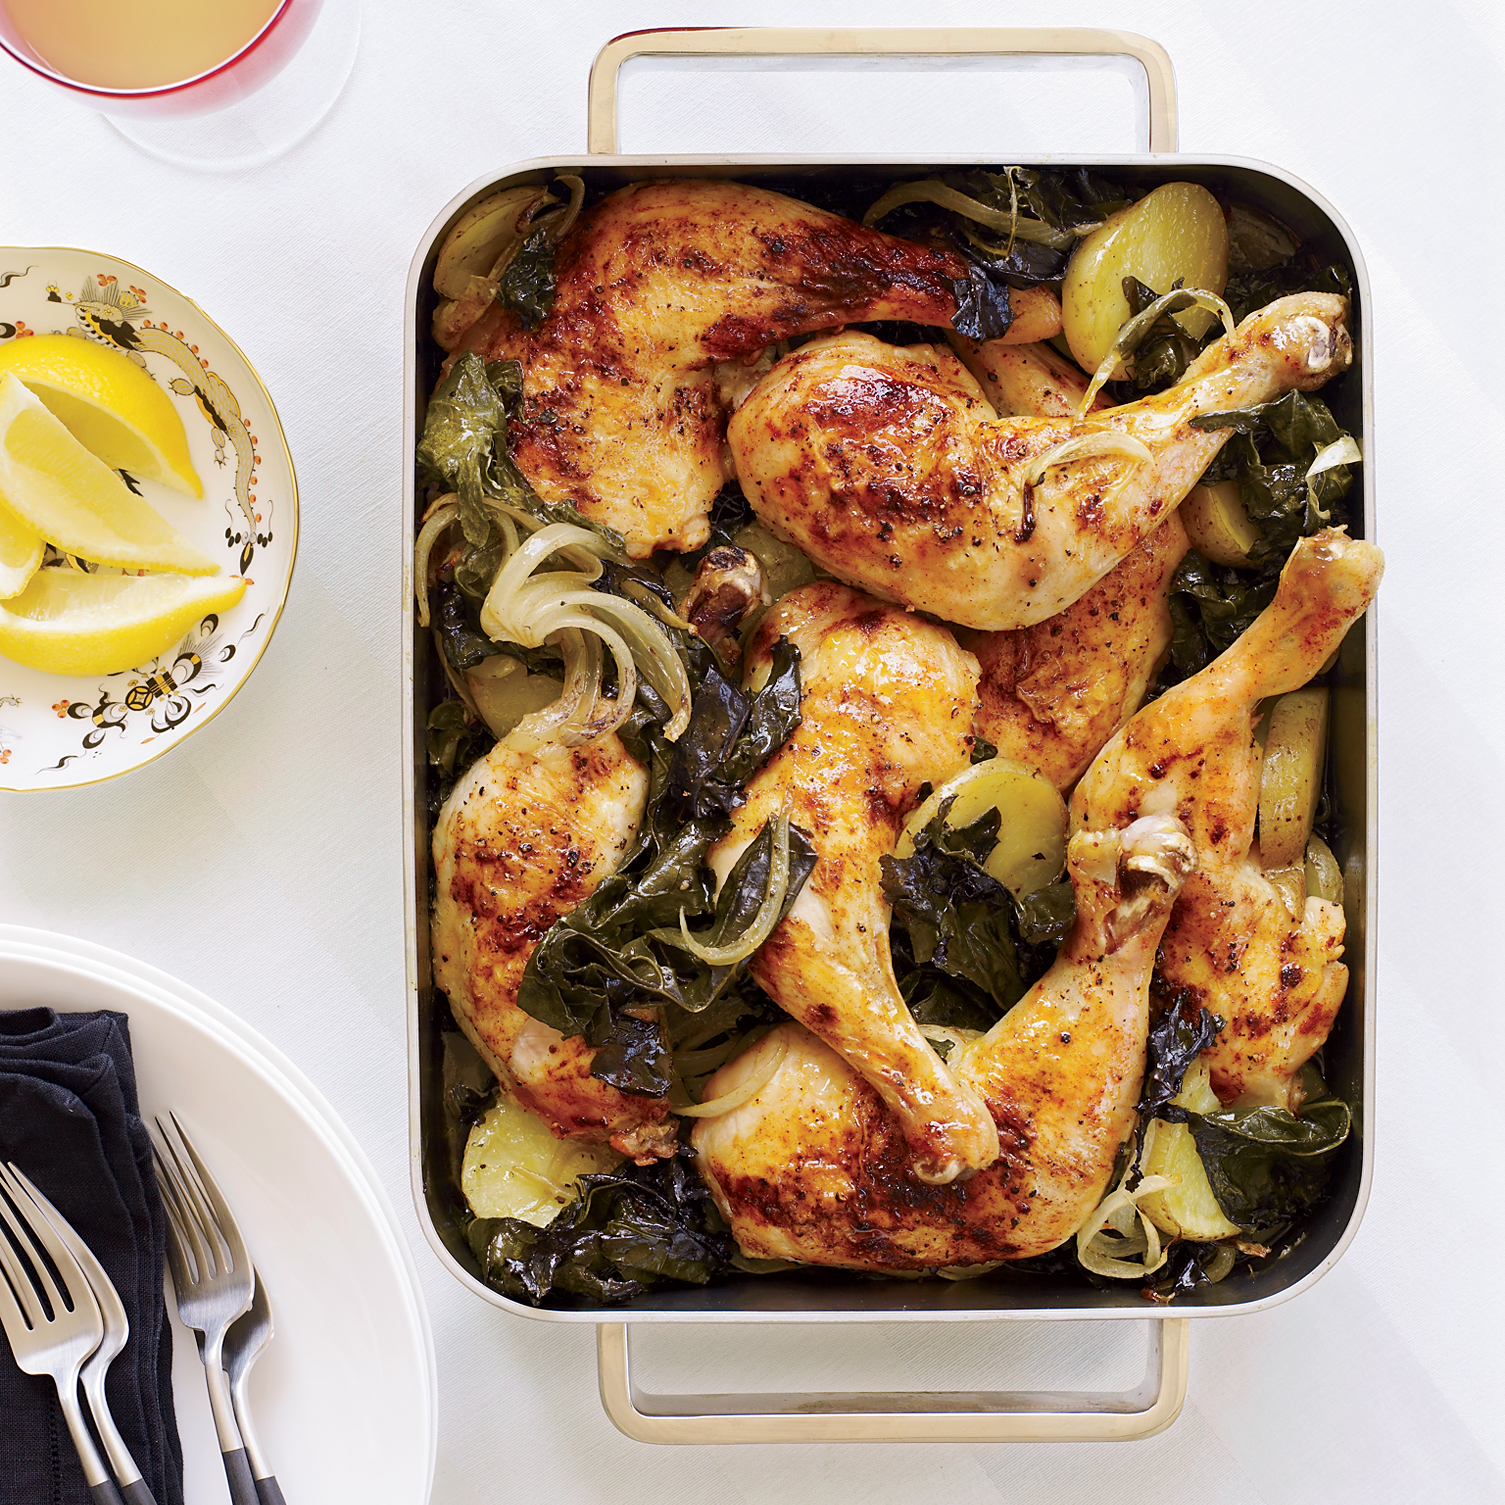 Food & Wine: Roasted Chicken Legs With Potatoes And Kale